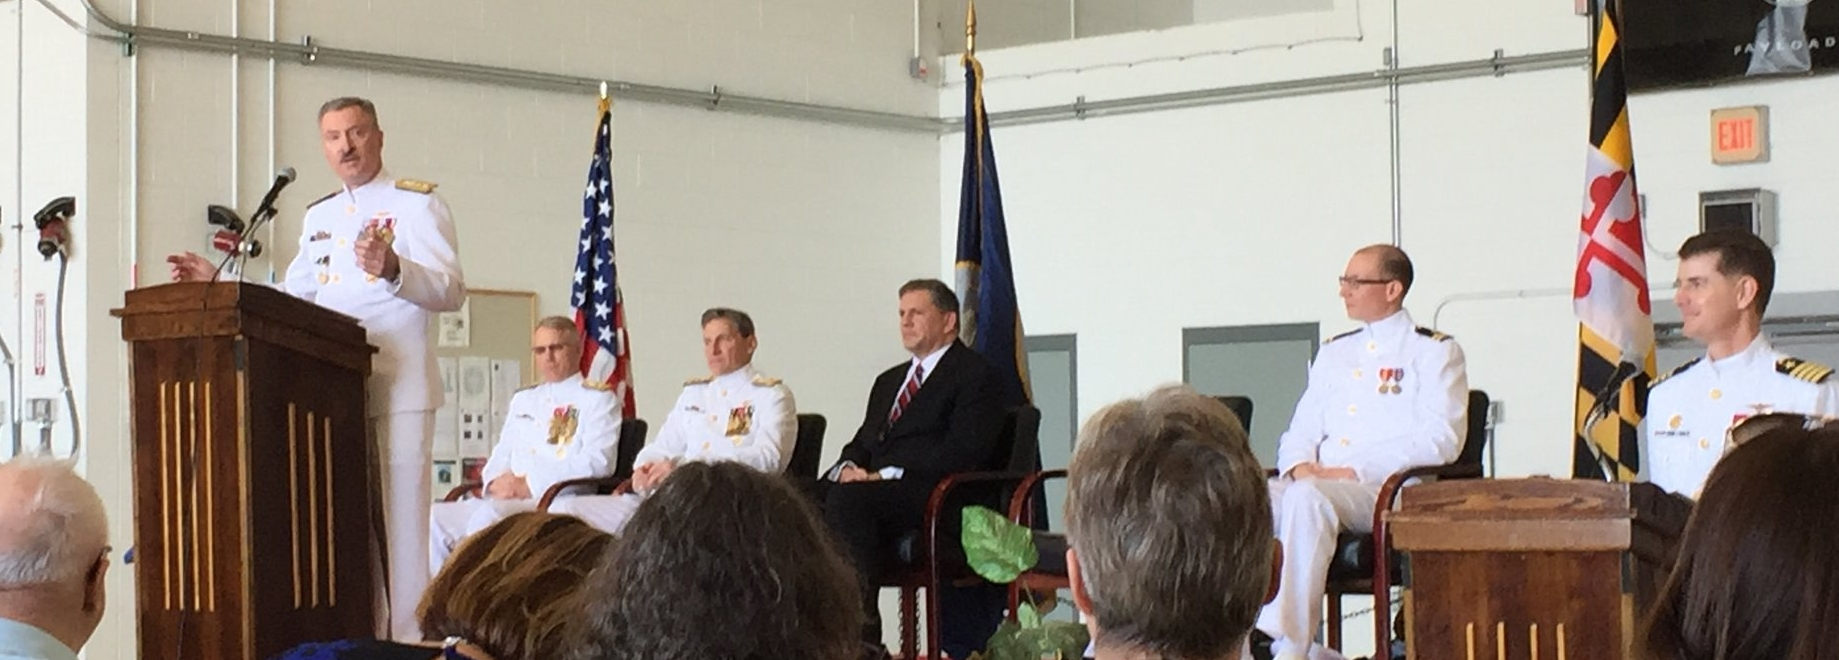 """RADM Mark Darrah, USN, outgoing PEO U&W addresses the crowd with RDML Brian Corey, the new PEO U&W, VADM Paul Grosklags head of NAVAIR, and ASN RDA Jim """"Hondo"""" Guerts among others in attendance (May 3, 2018)."""